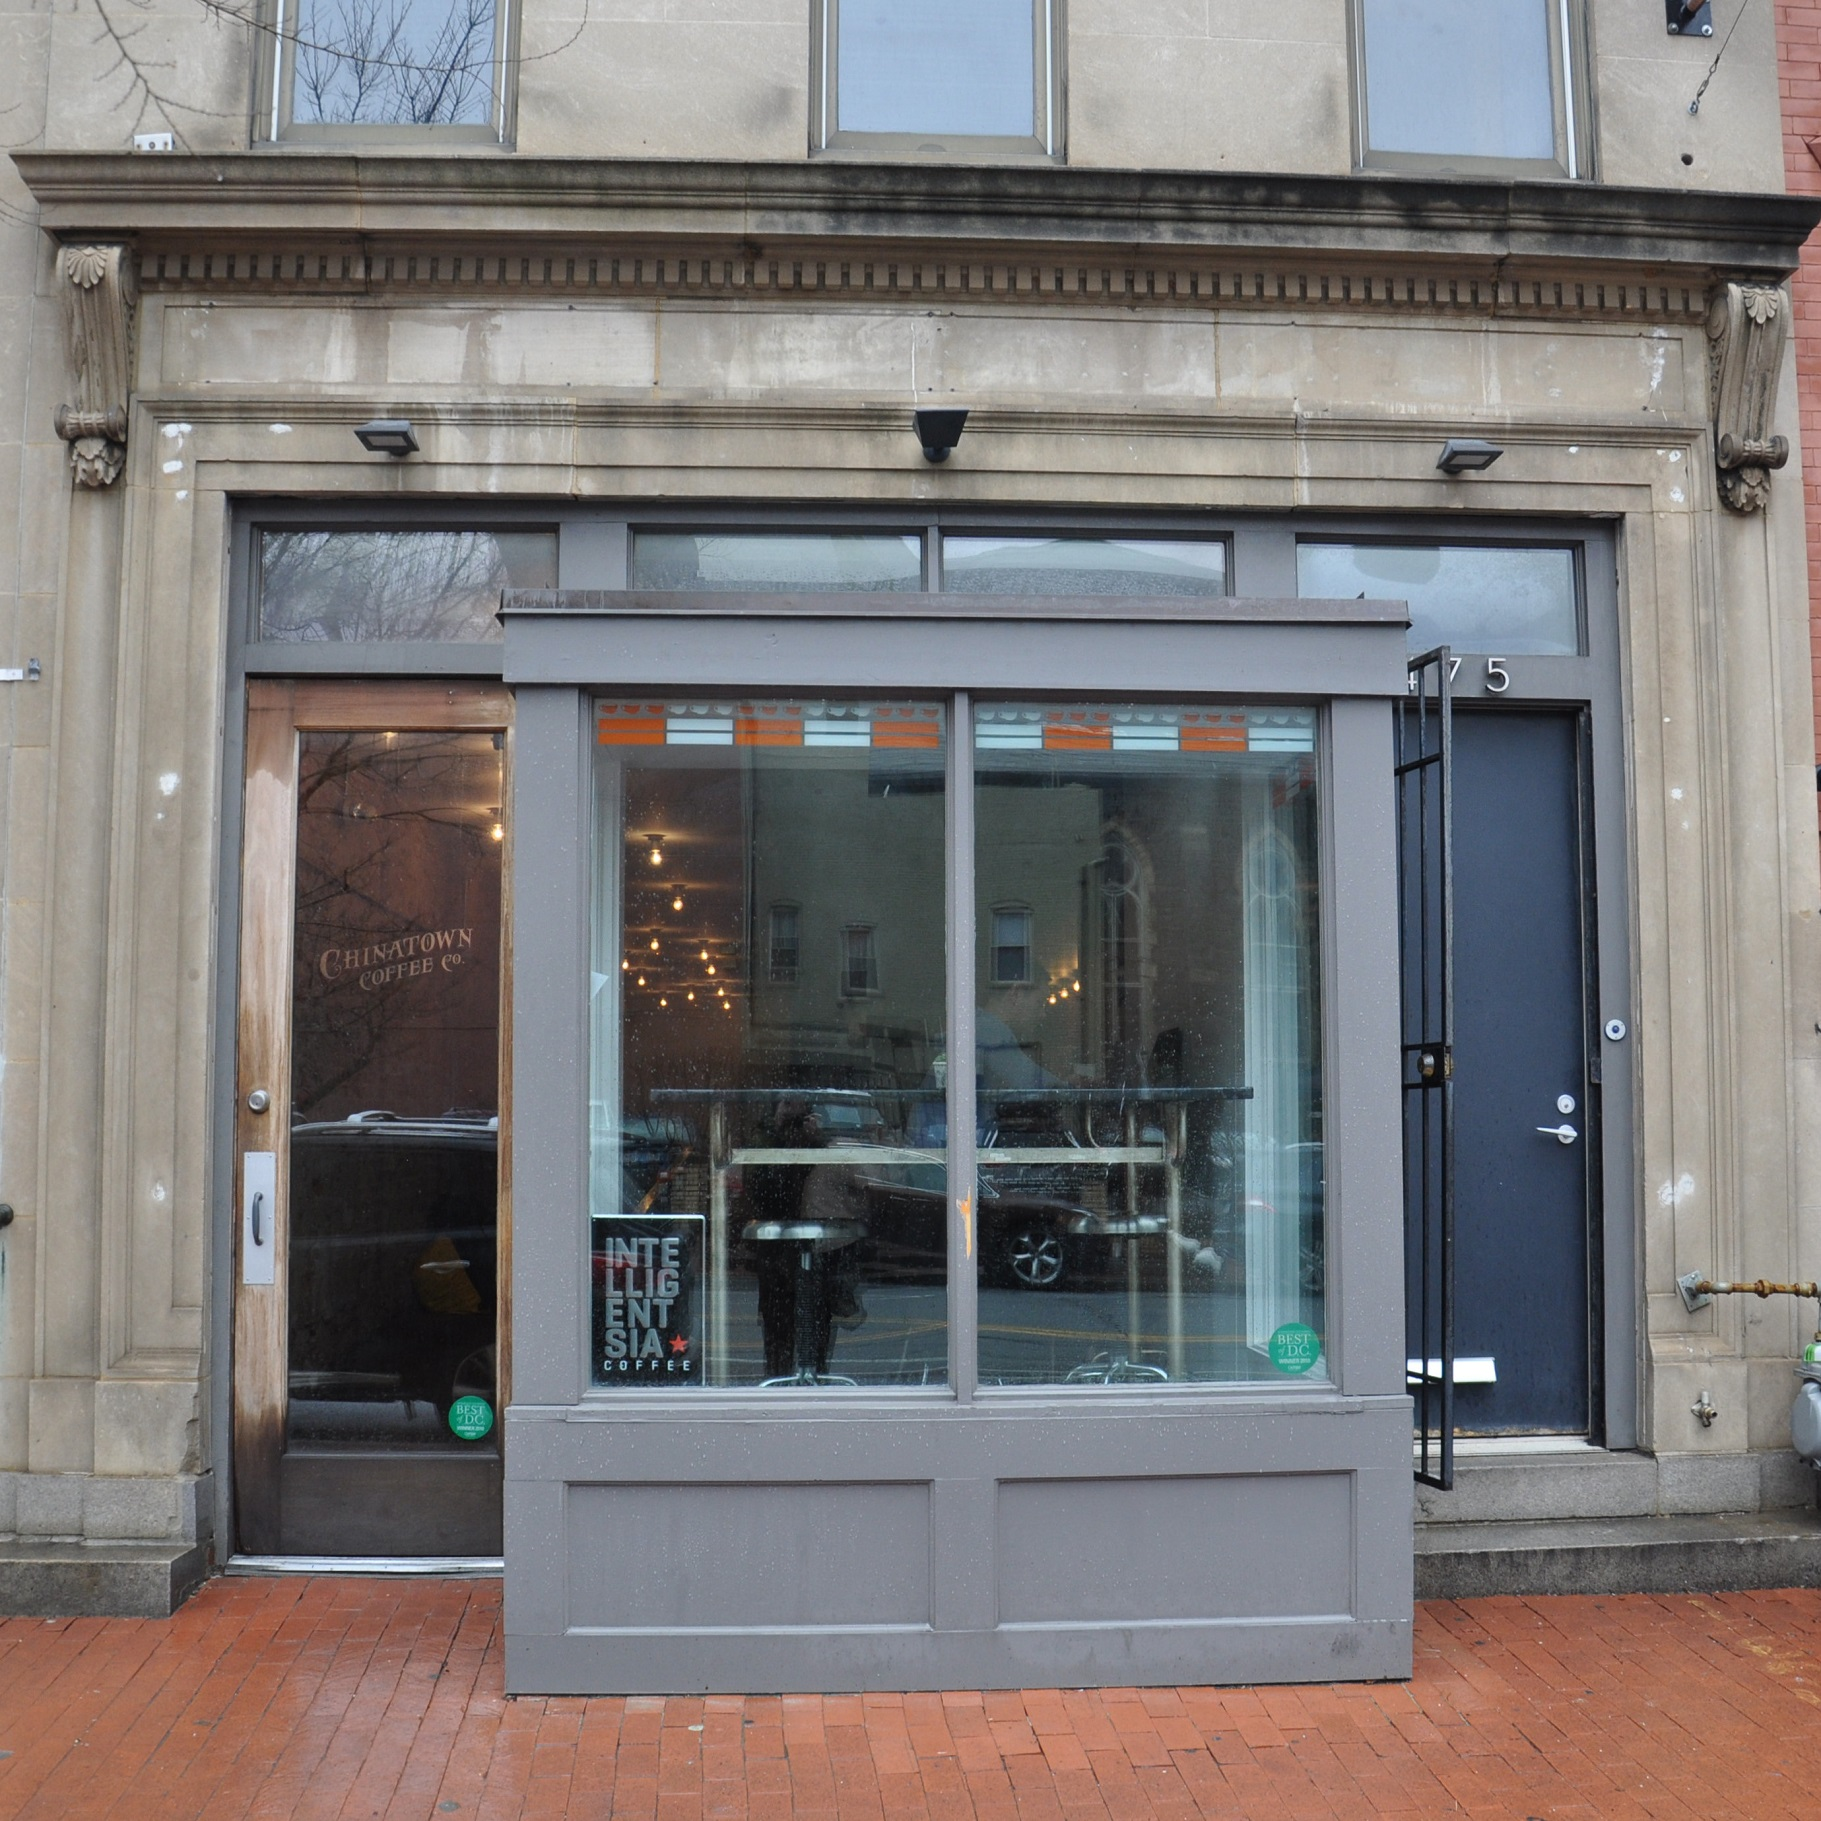 The front of Chinatown Coffee Co on H Street in Washington DC